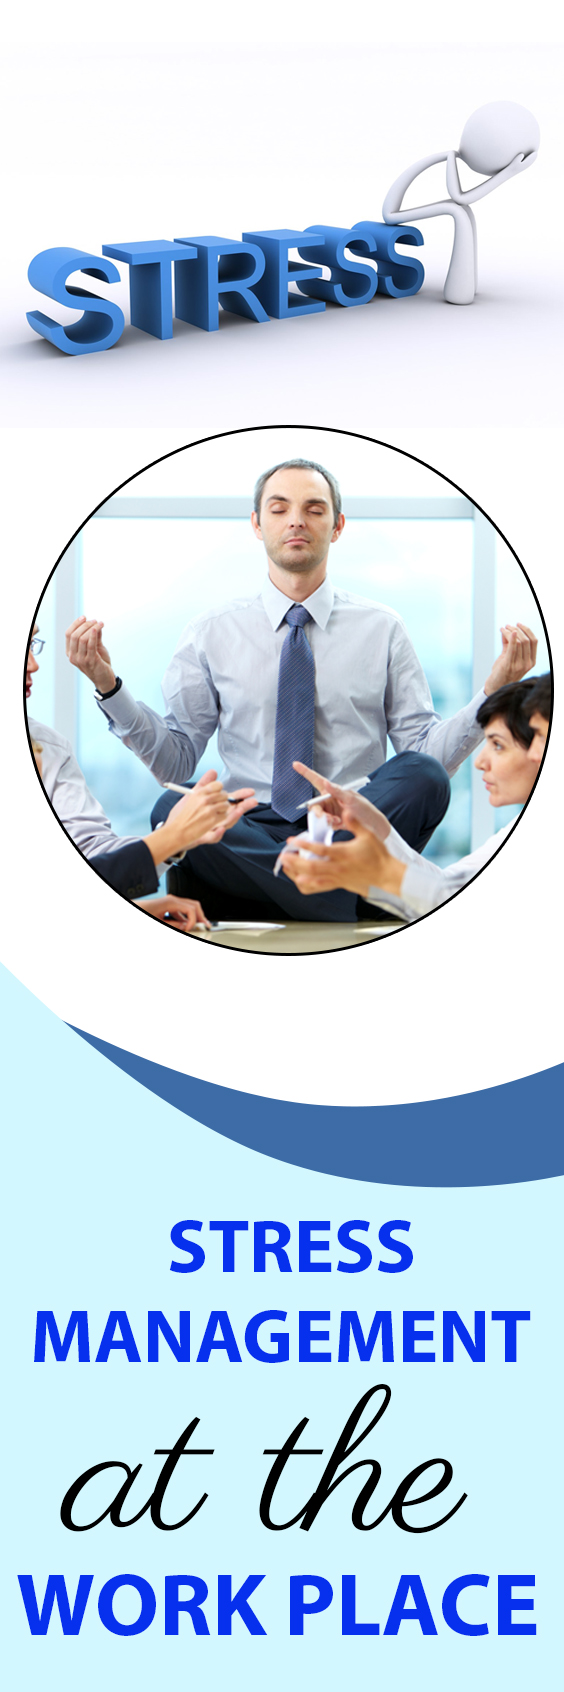 stress management at the workplace Stress management in the workplace building resilience and leading a stress-less life the health of an organisation and the health of its workforce are inextricably linked.